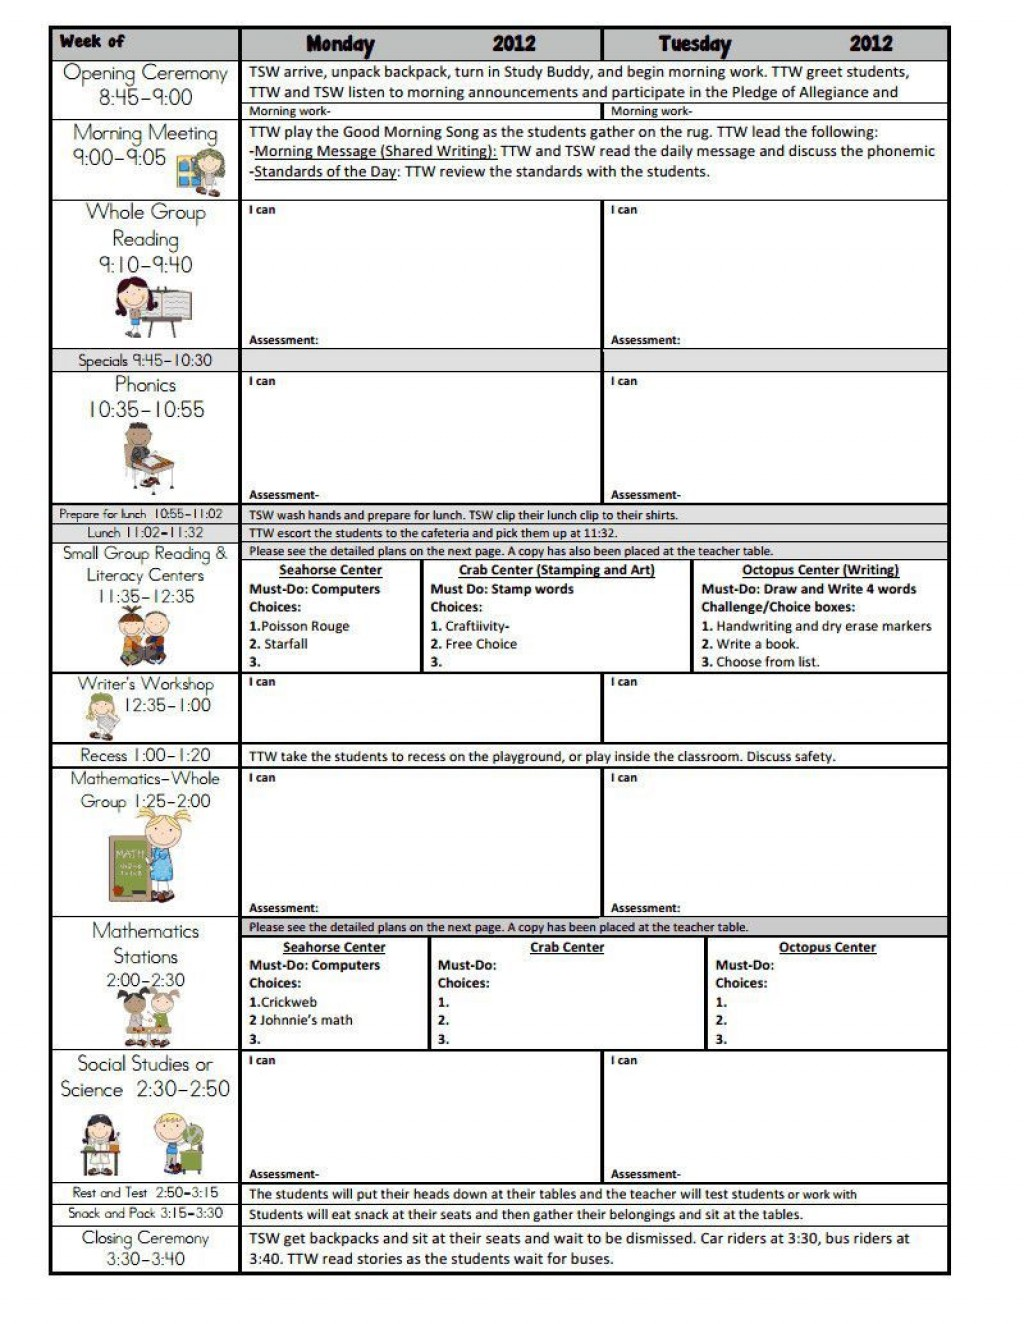 000 Unusual Weekly Lesson Plan Template Google Doc Image  Docs 5e SimpleLarge